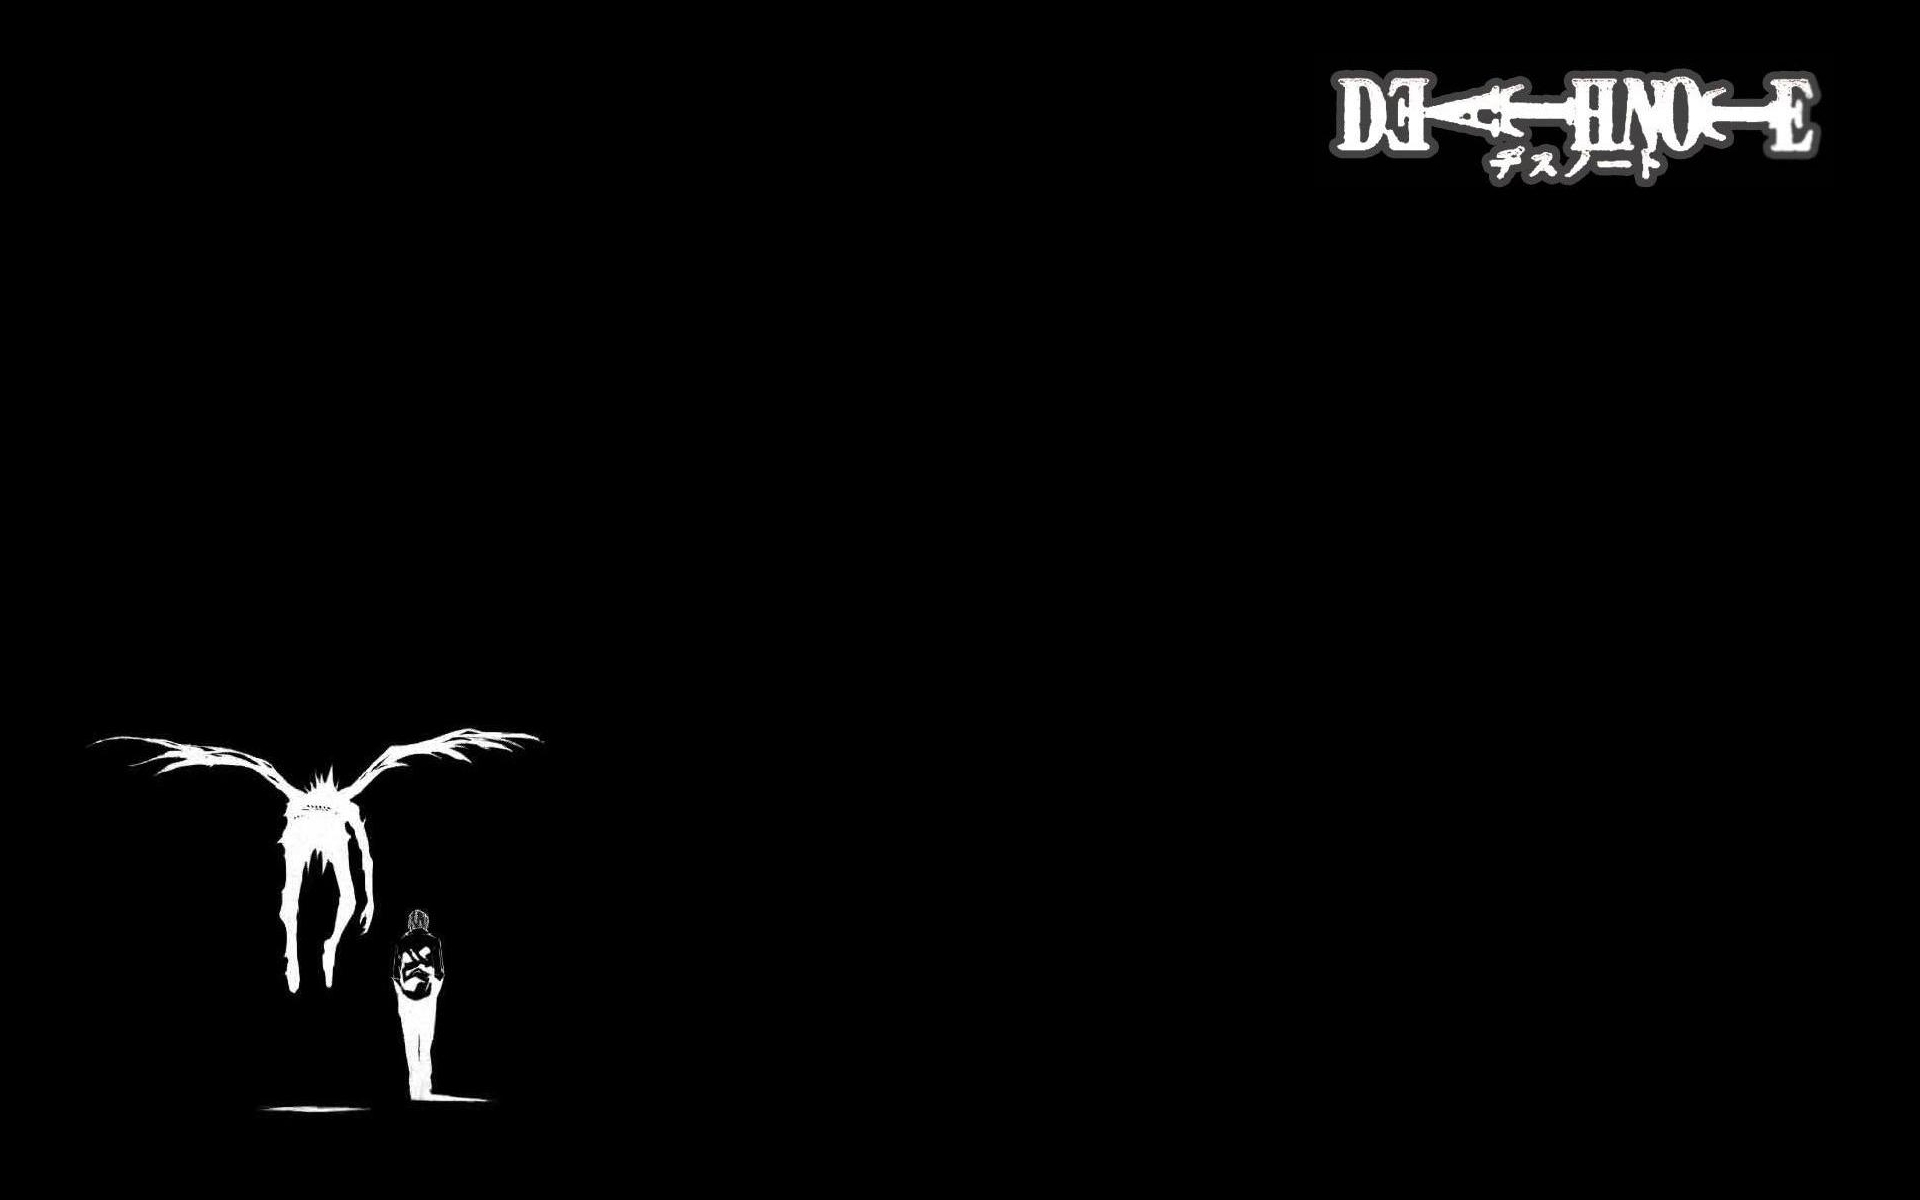 Death note iphone wallpaper tumblr - Death Note Light Wings Ryuk Yagami Light Simple Background Wallpaper